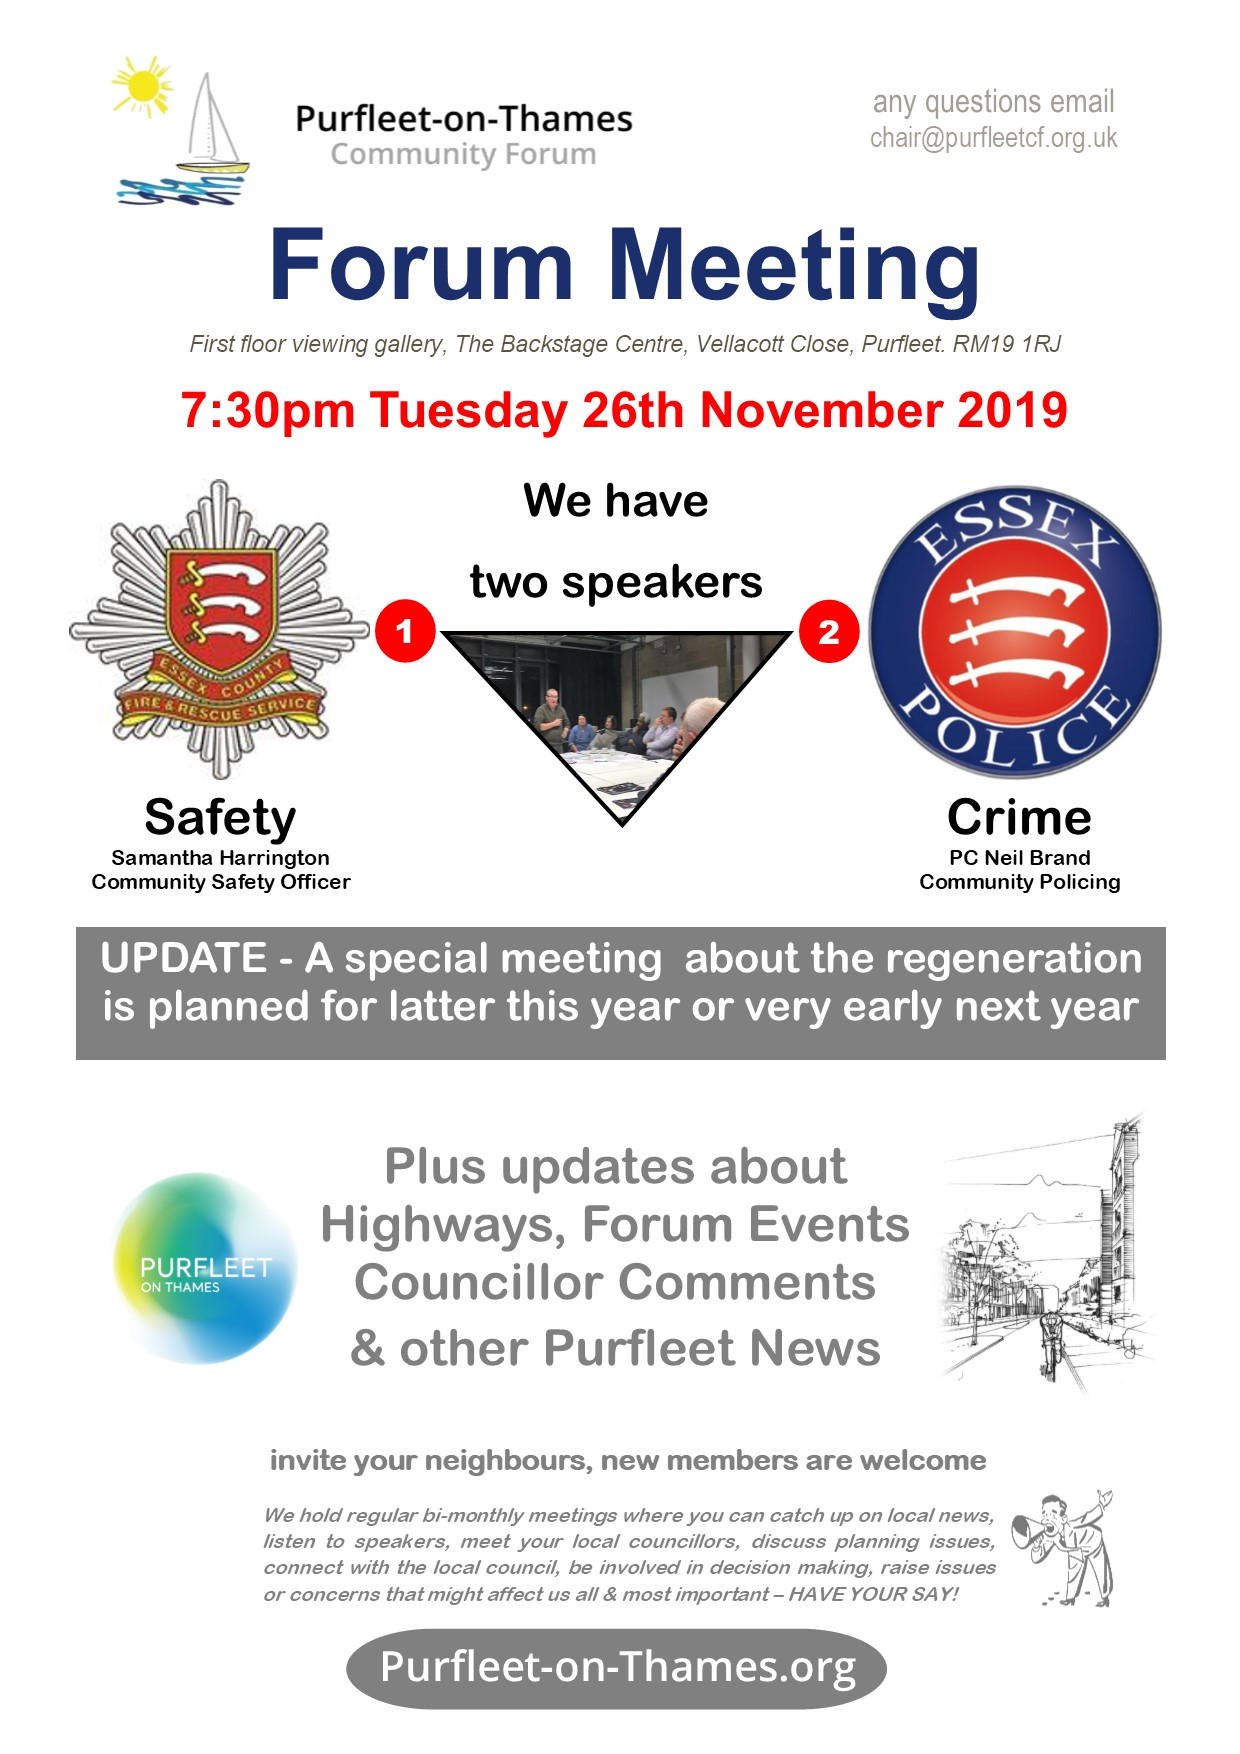 19.11.26 POTCF forum meeting, update